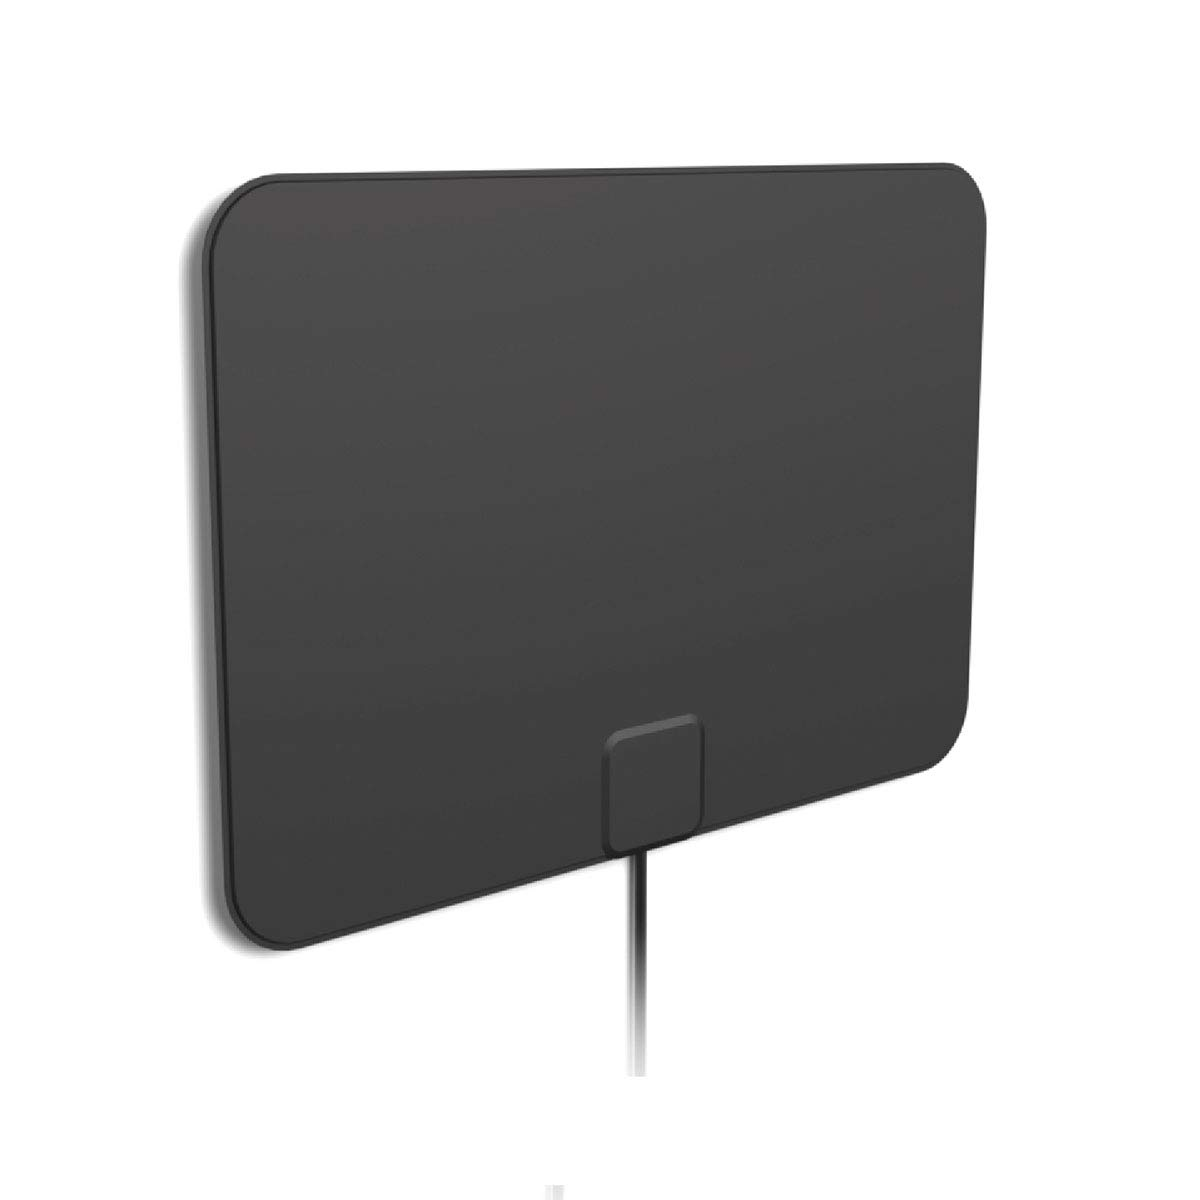 [2019 Latest] HD Digital Amplified TV Antenna - Support 4K 1080P & All Older TV's Indoor Powerful HDTV Amplifier Signal Booster - Coax Cable Included by 1 BY ONE